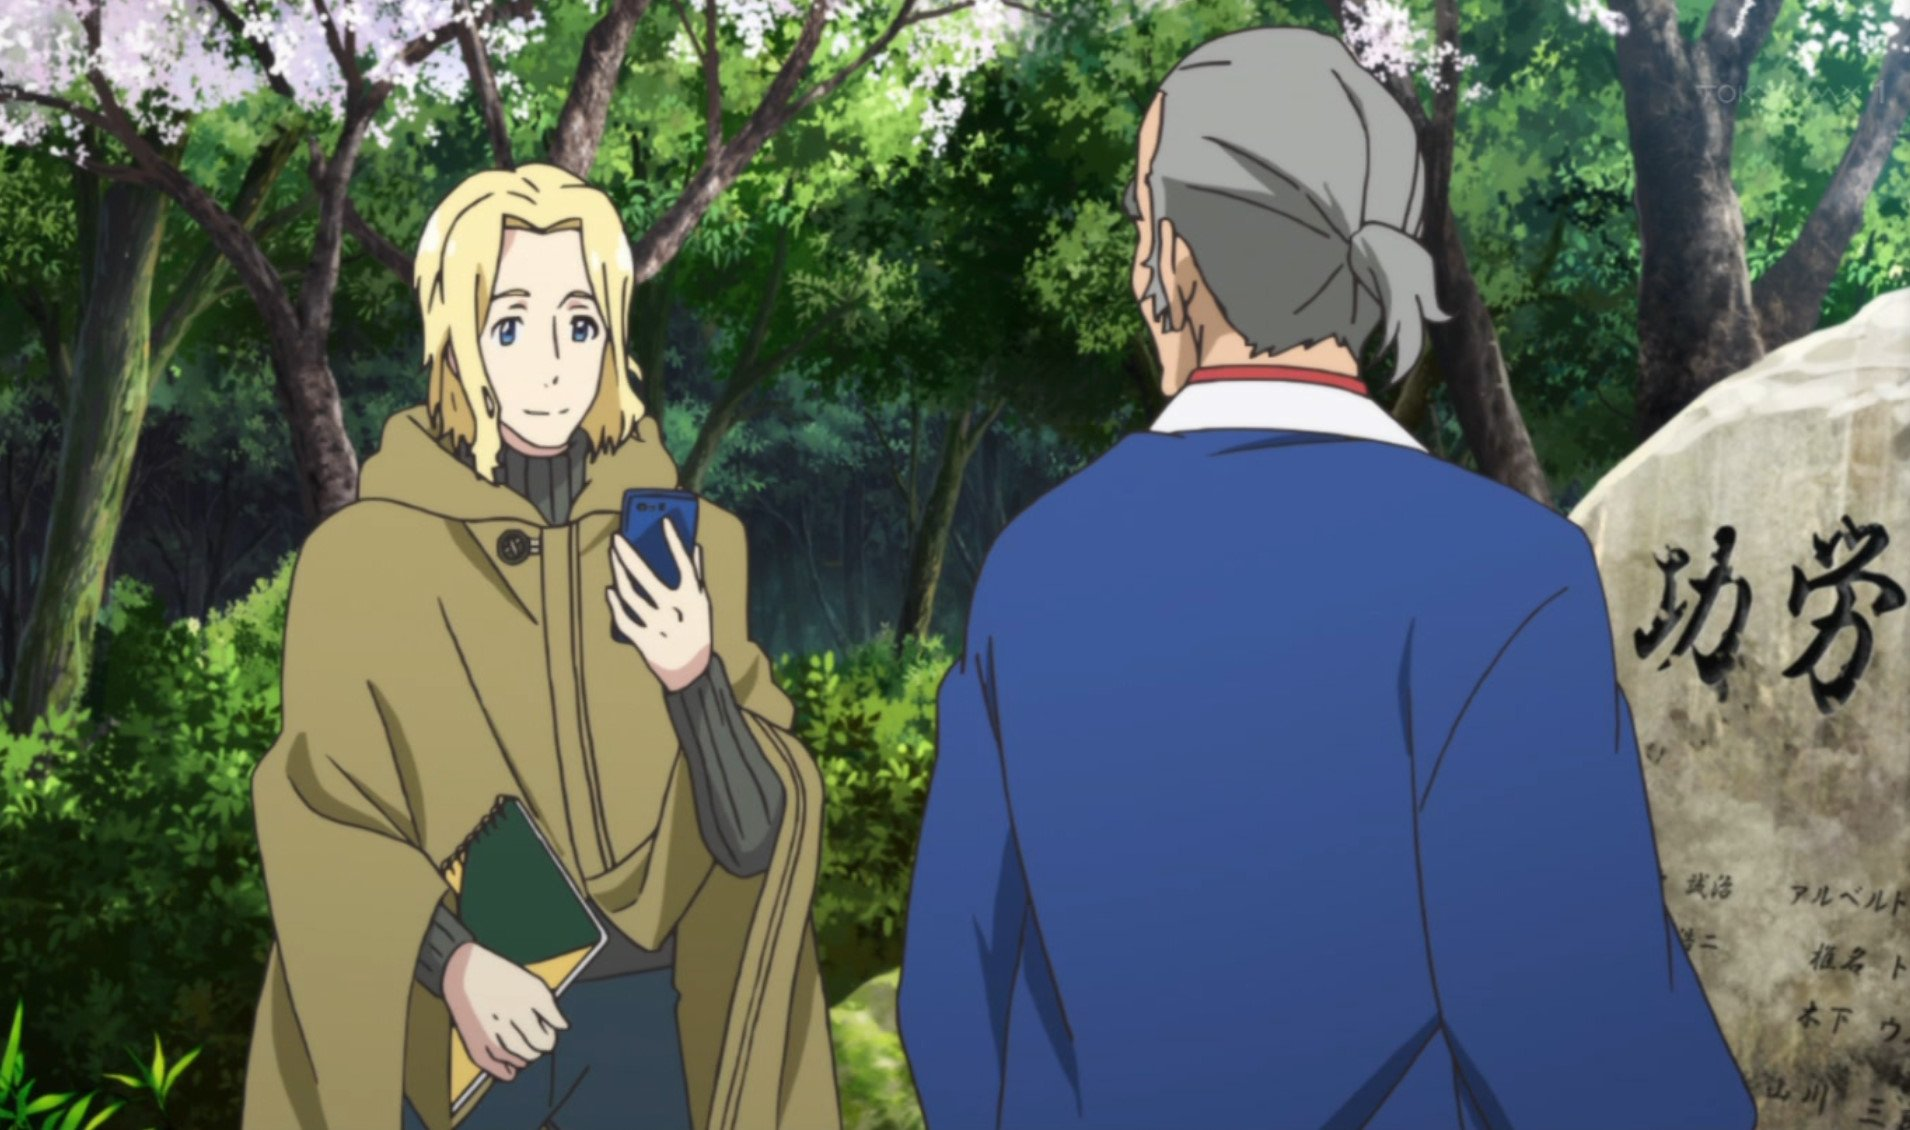 SNSの相互フォロワーです #sakura_quest https://t.co/yr38wEH1Rq